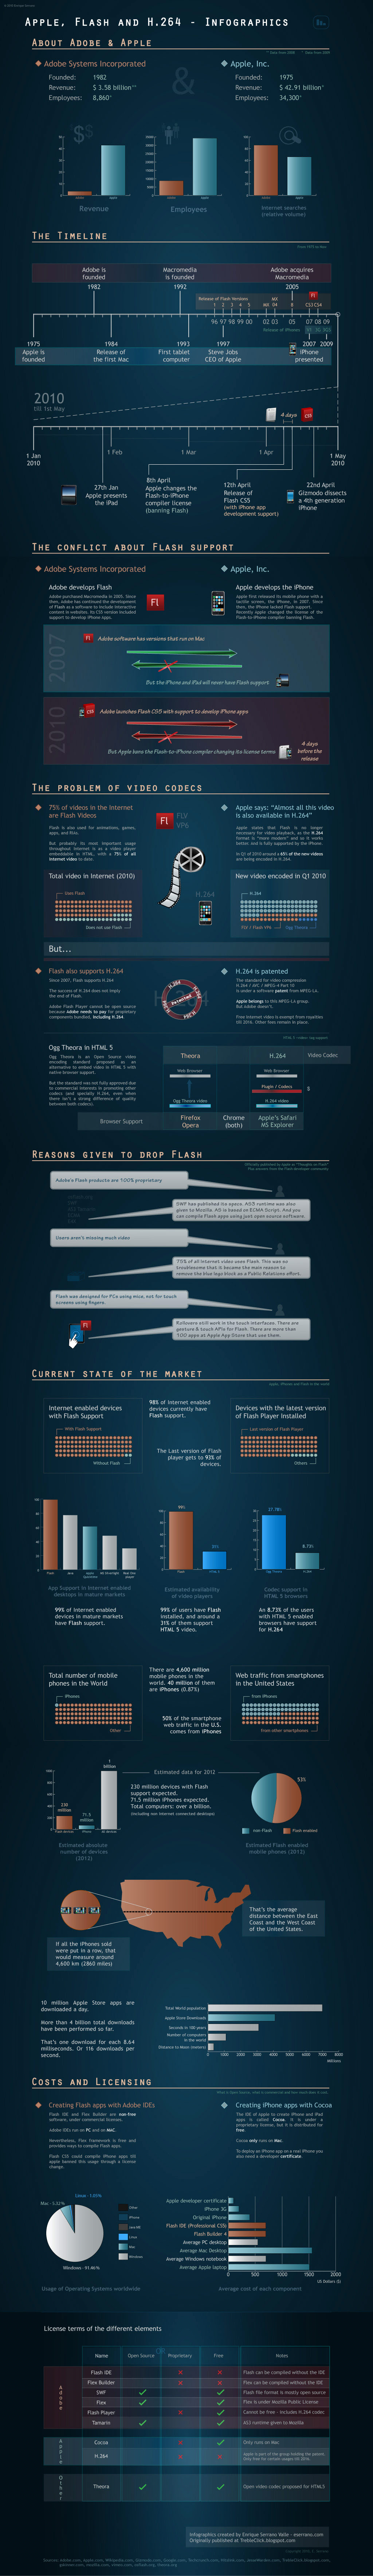 Apple and Adobe infographics